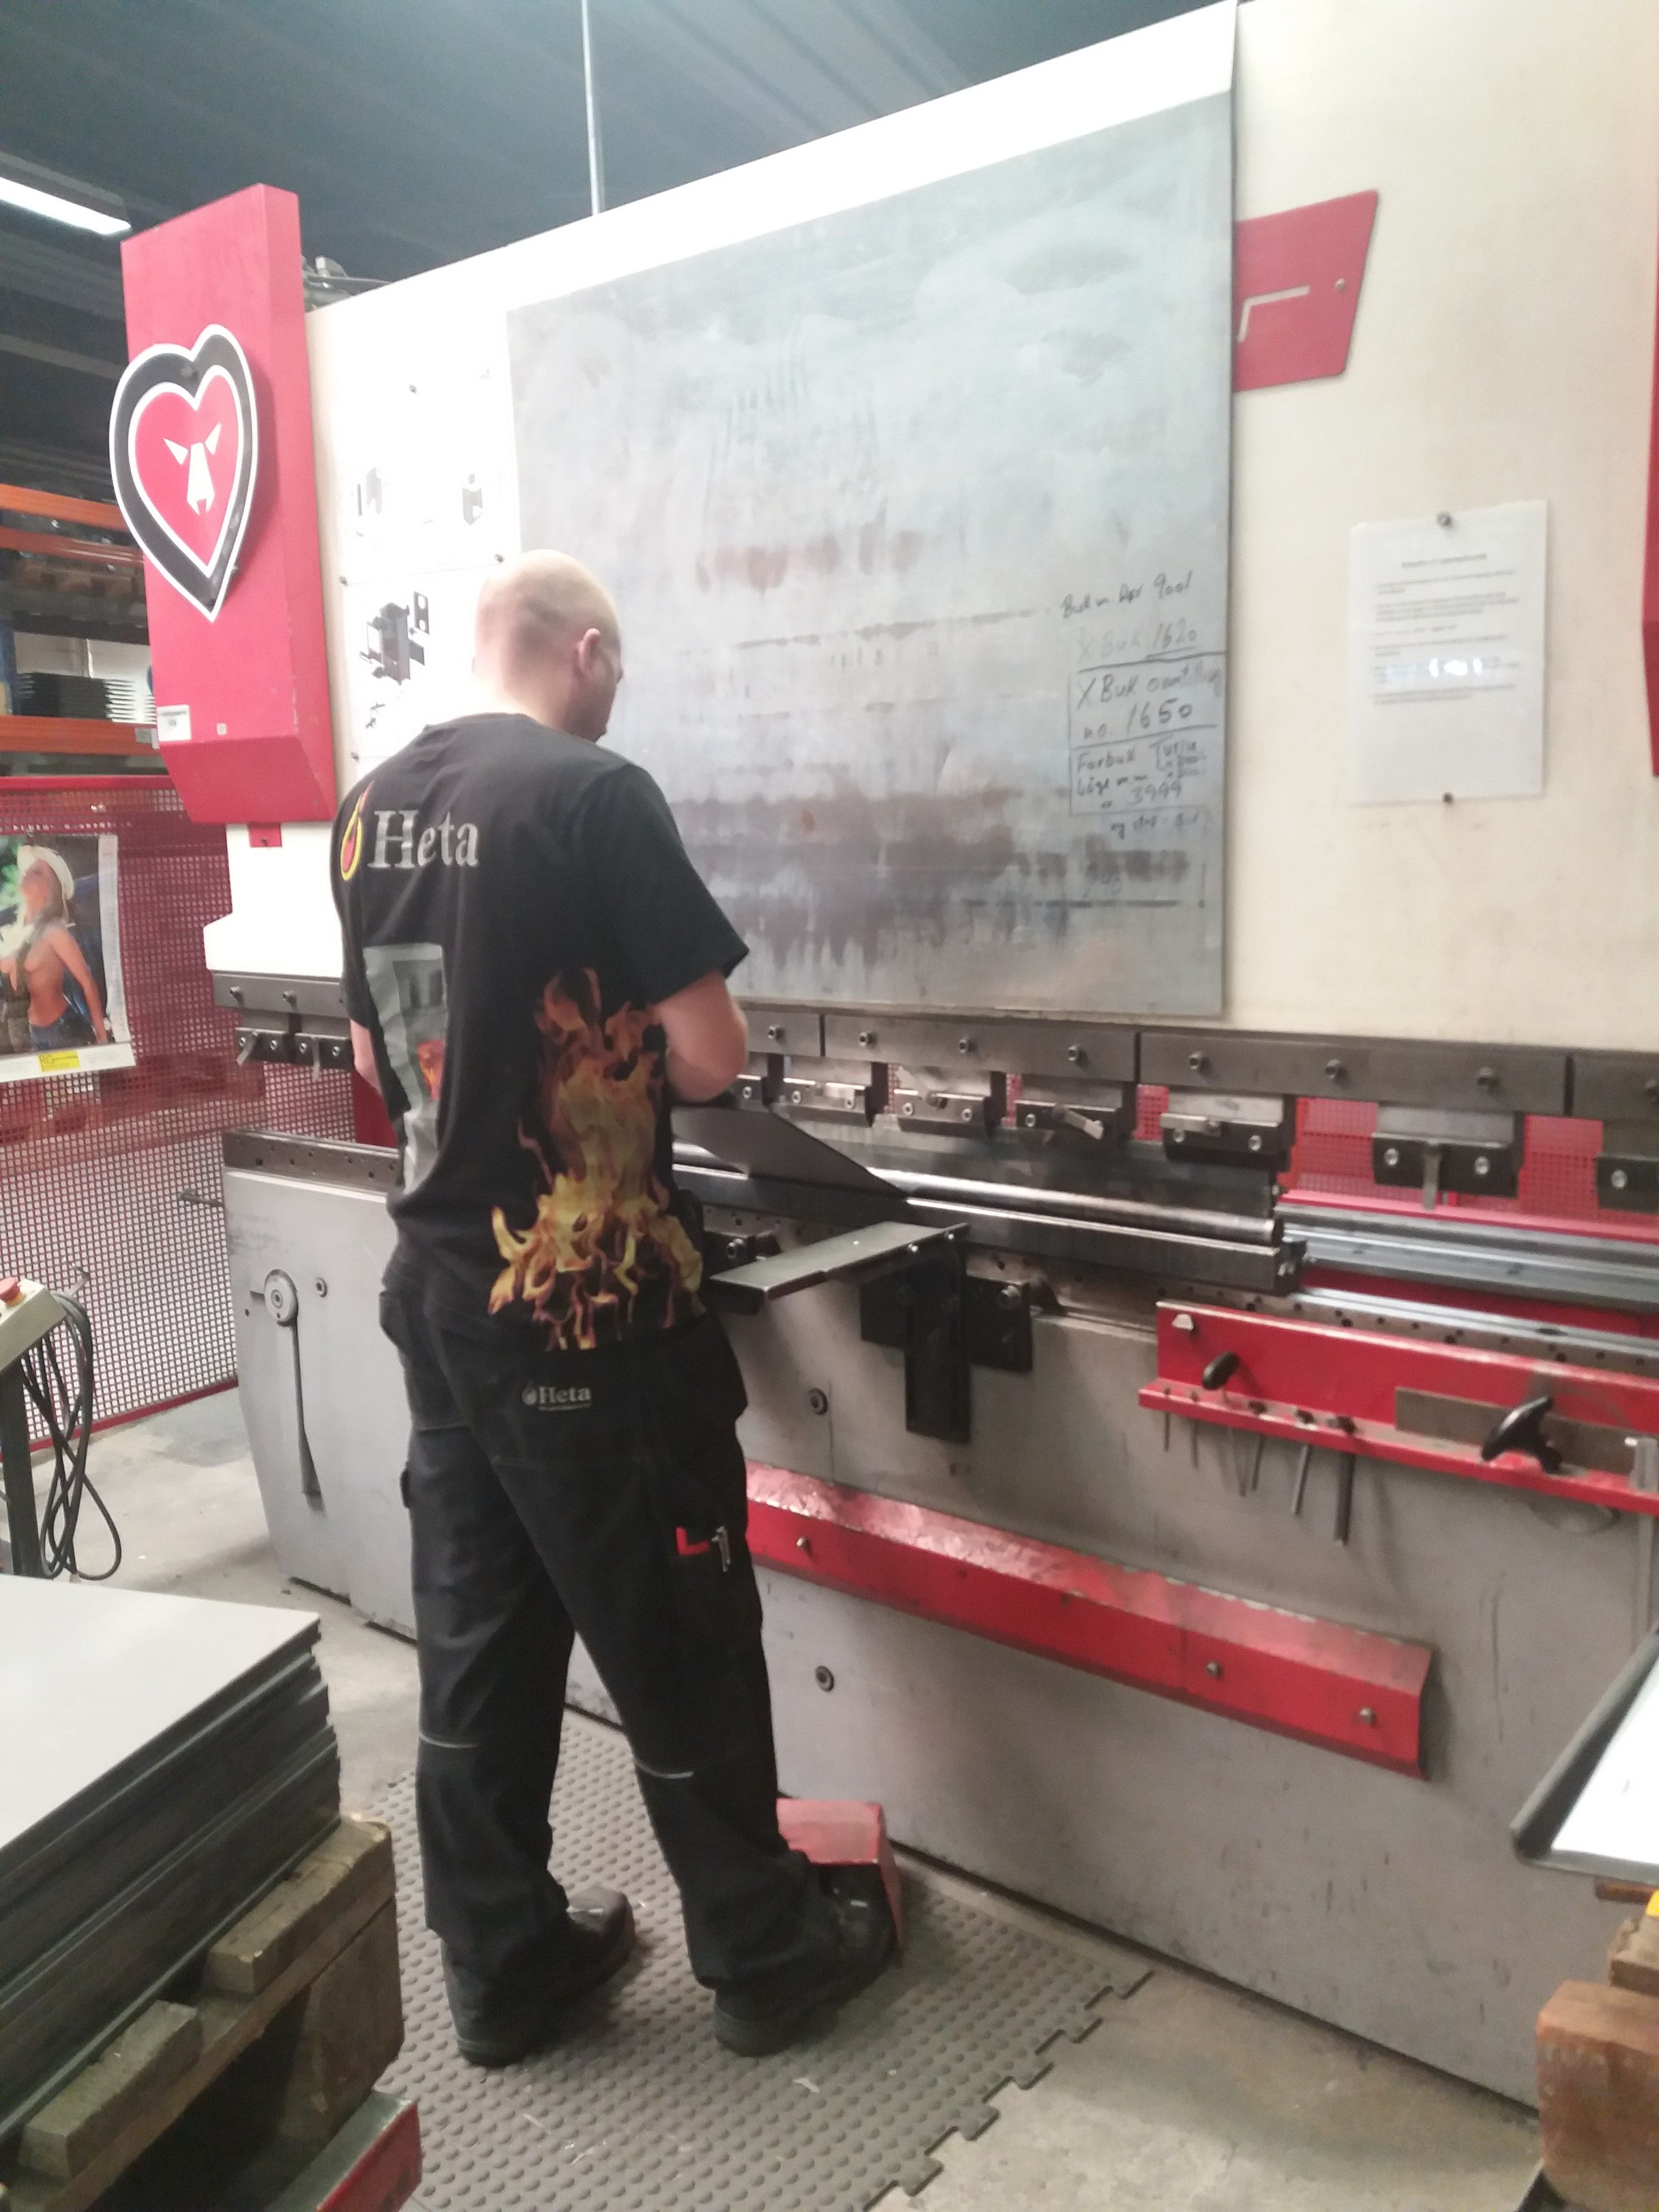 Pin by natural flames ltd on pevex heta factory tour in